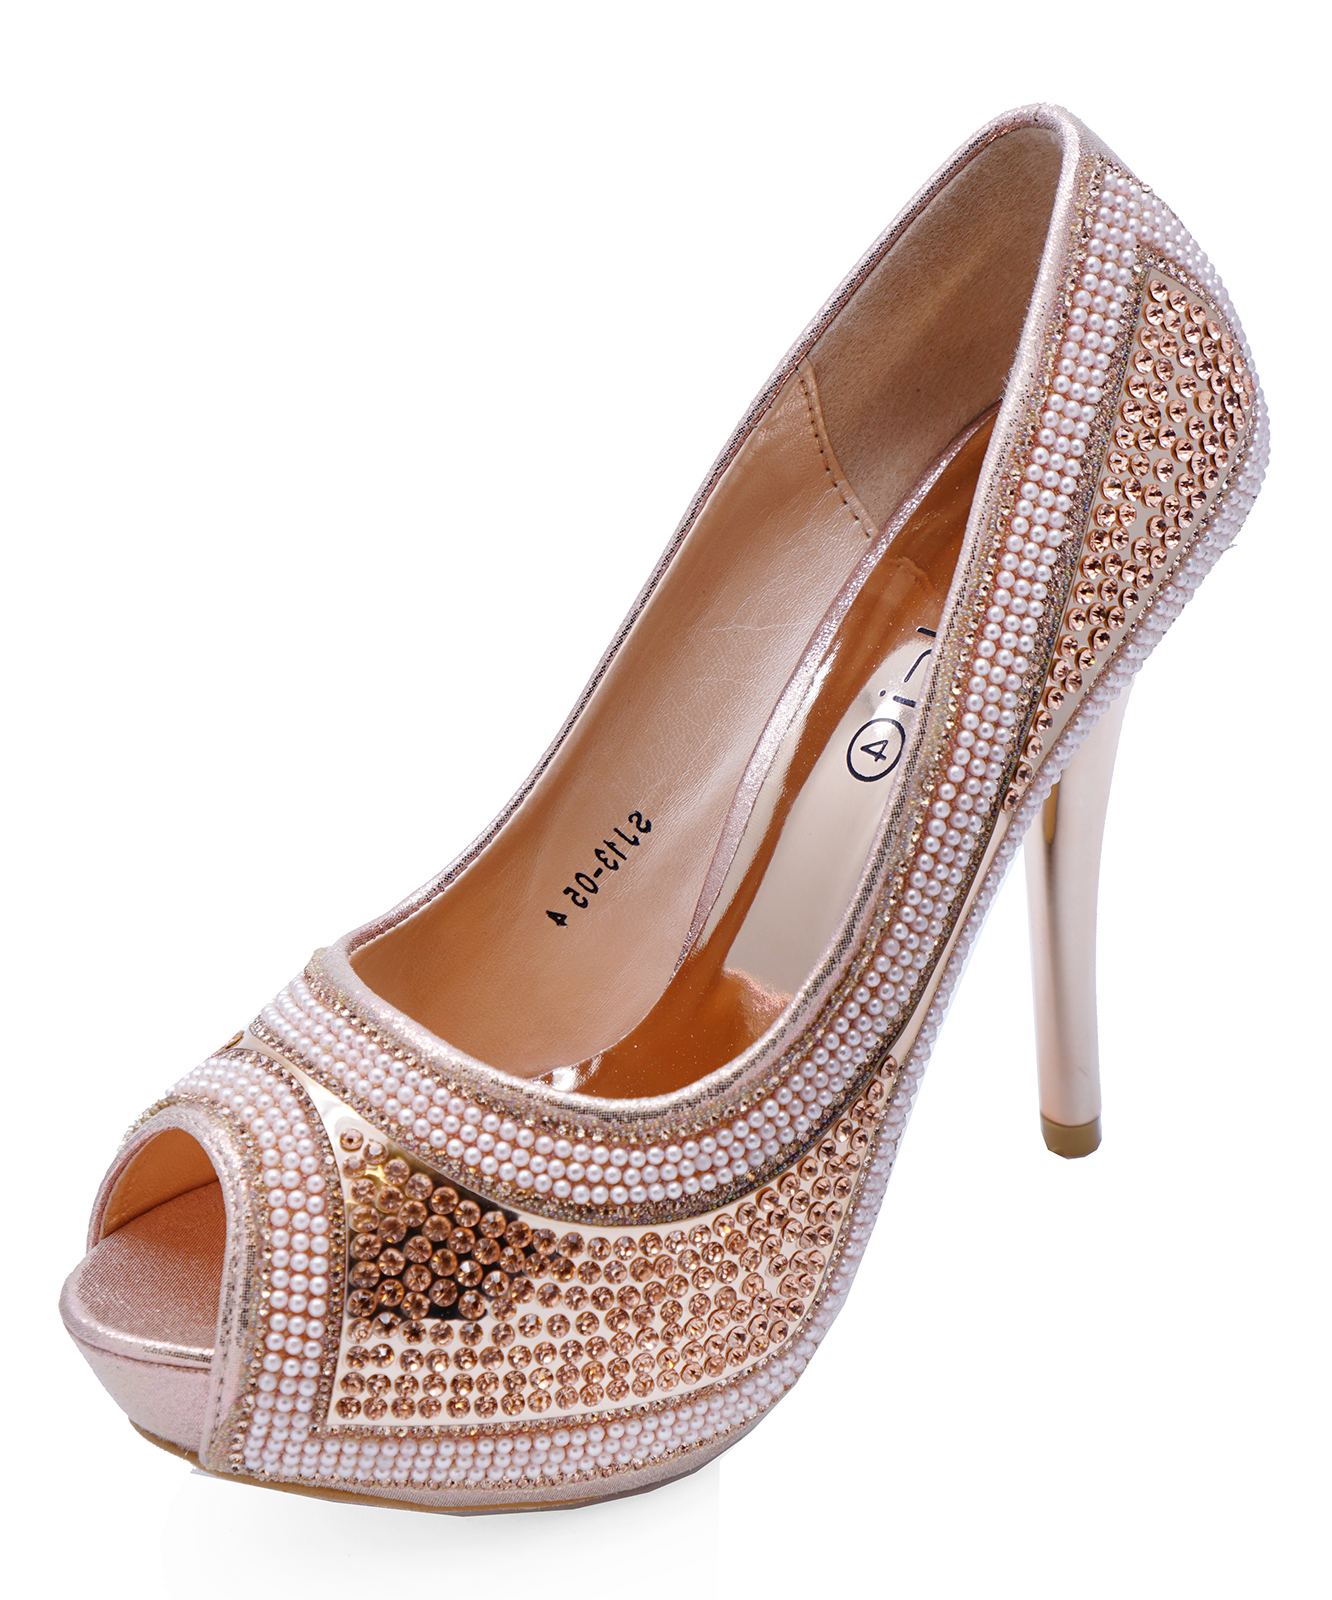 Gold High Heel Bridesmaid Name Champagne Party Wedding: LADIES ROSE GOLD DIAMANTE WEDDING BRIDESMAID PROM PEEP-TOE